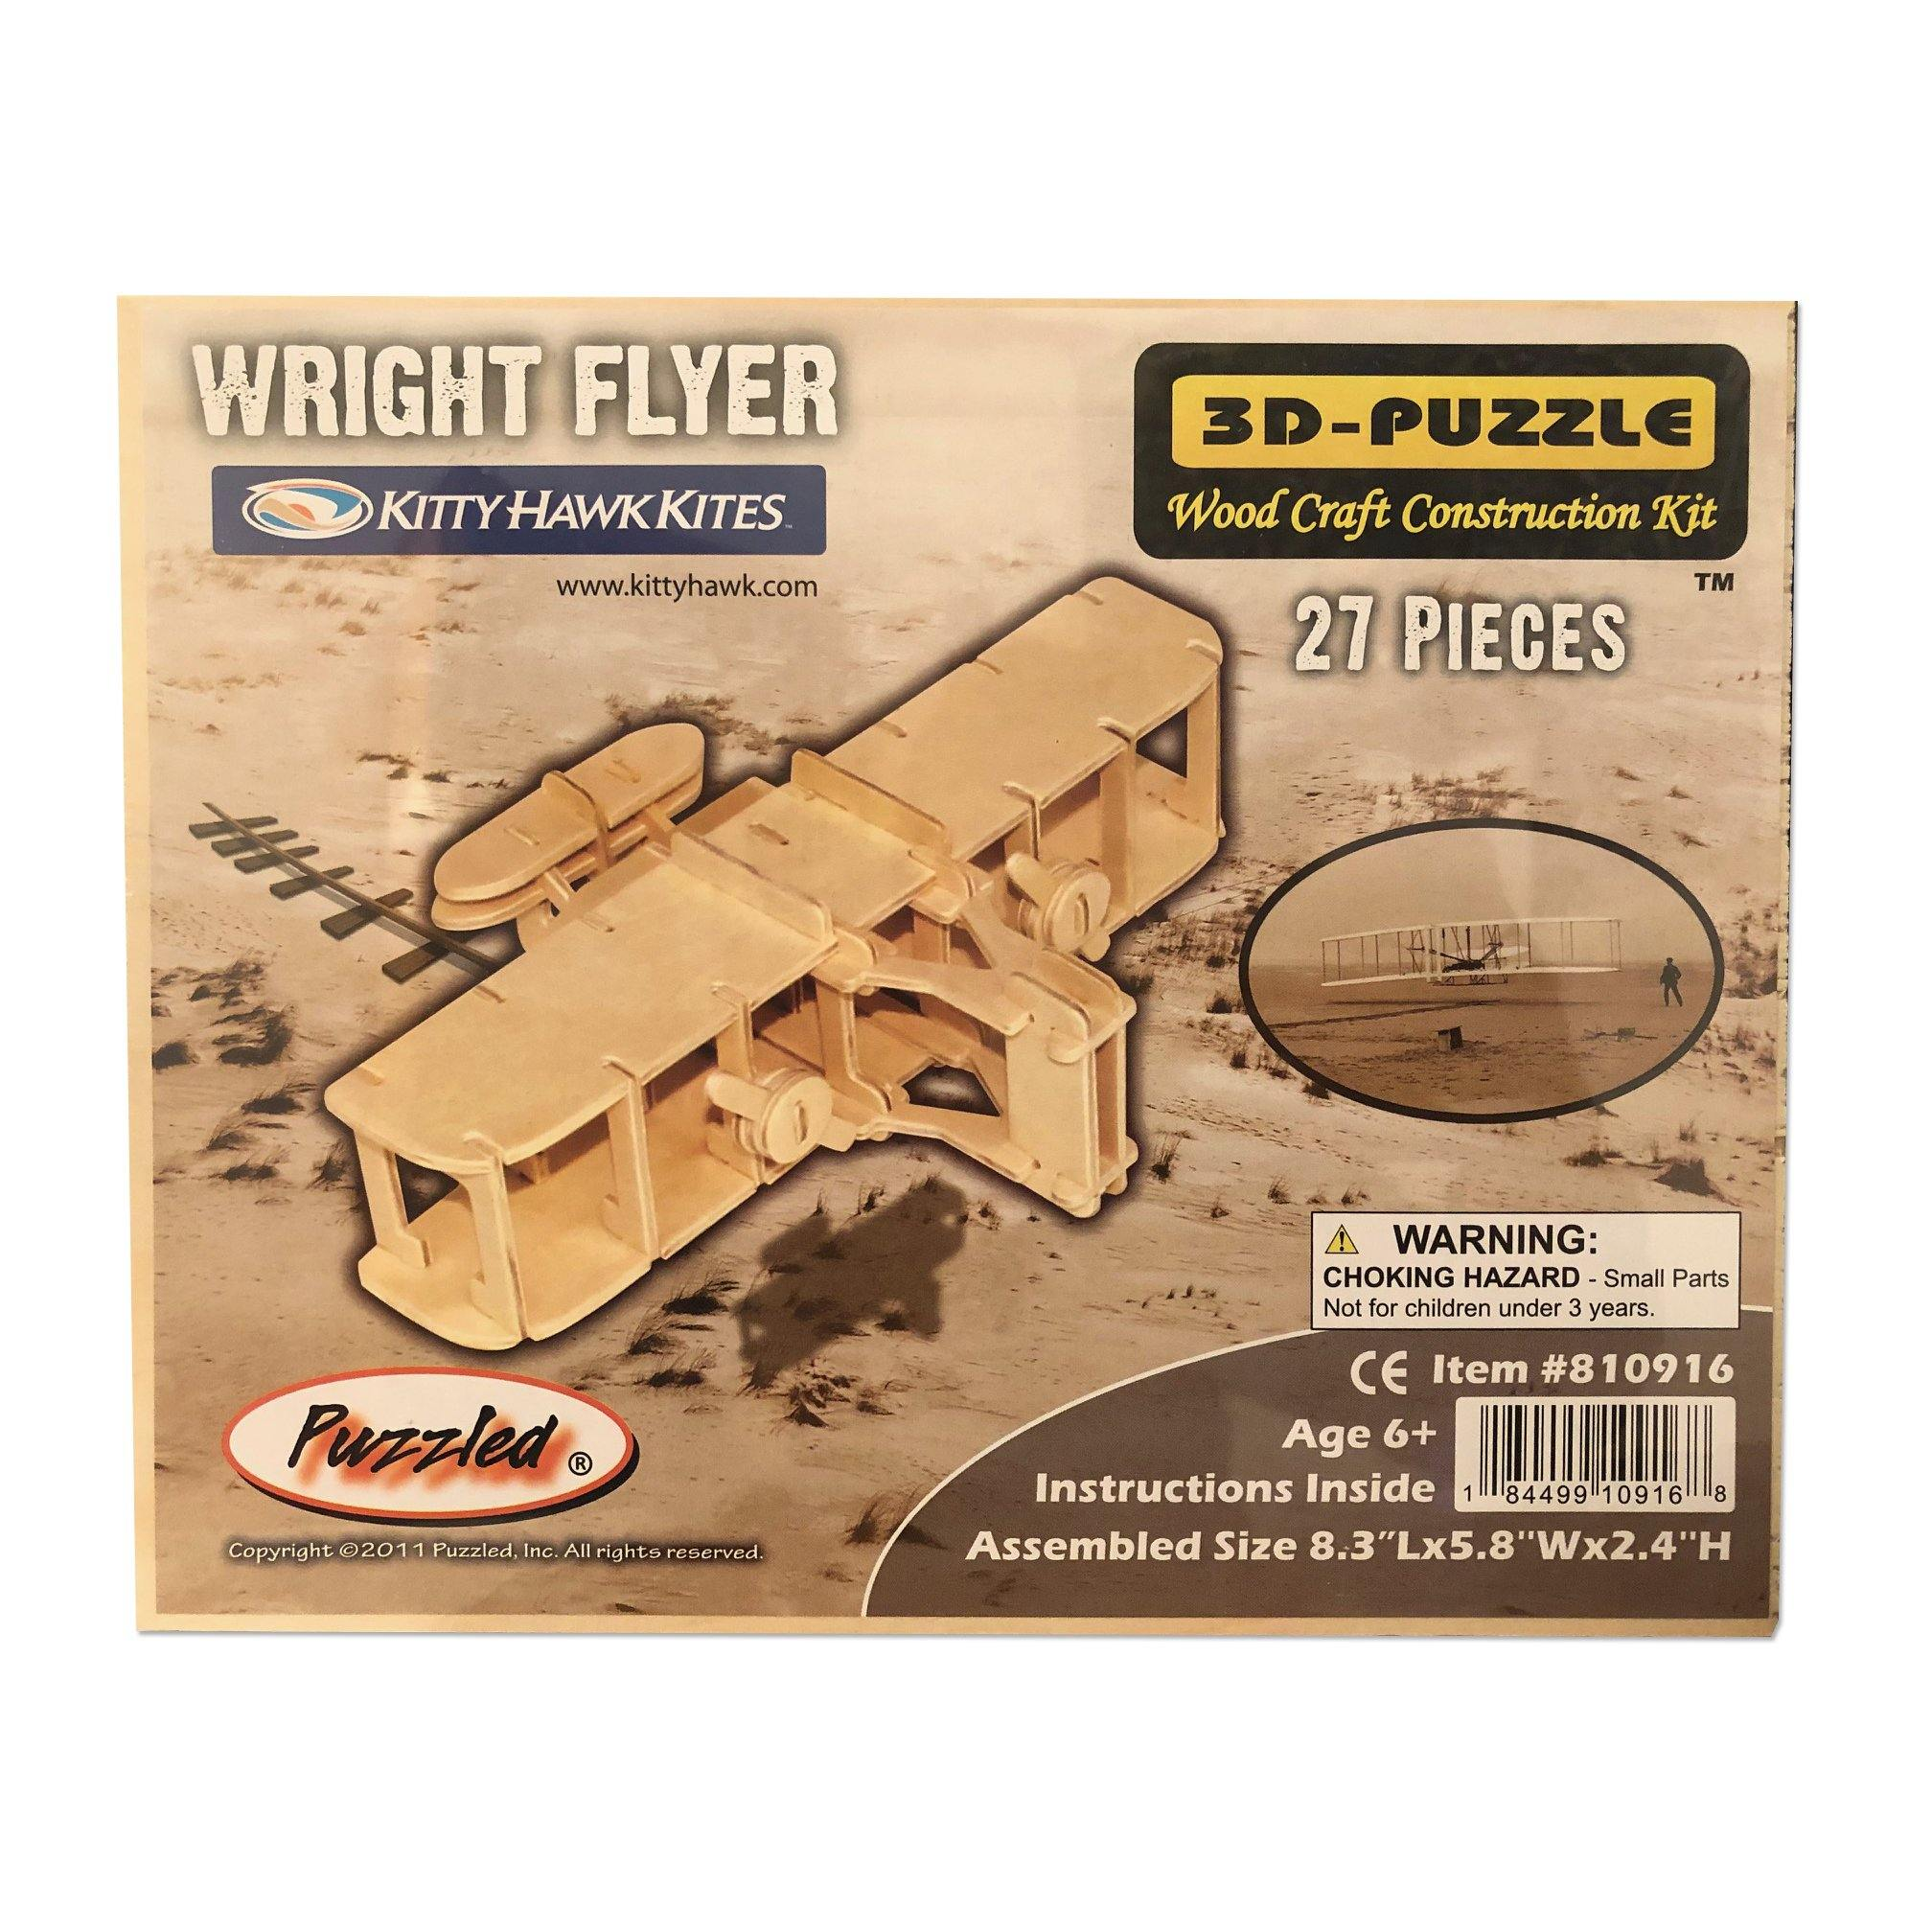 Wright Flyer Wooden 3-D Puzzle